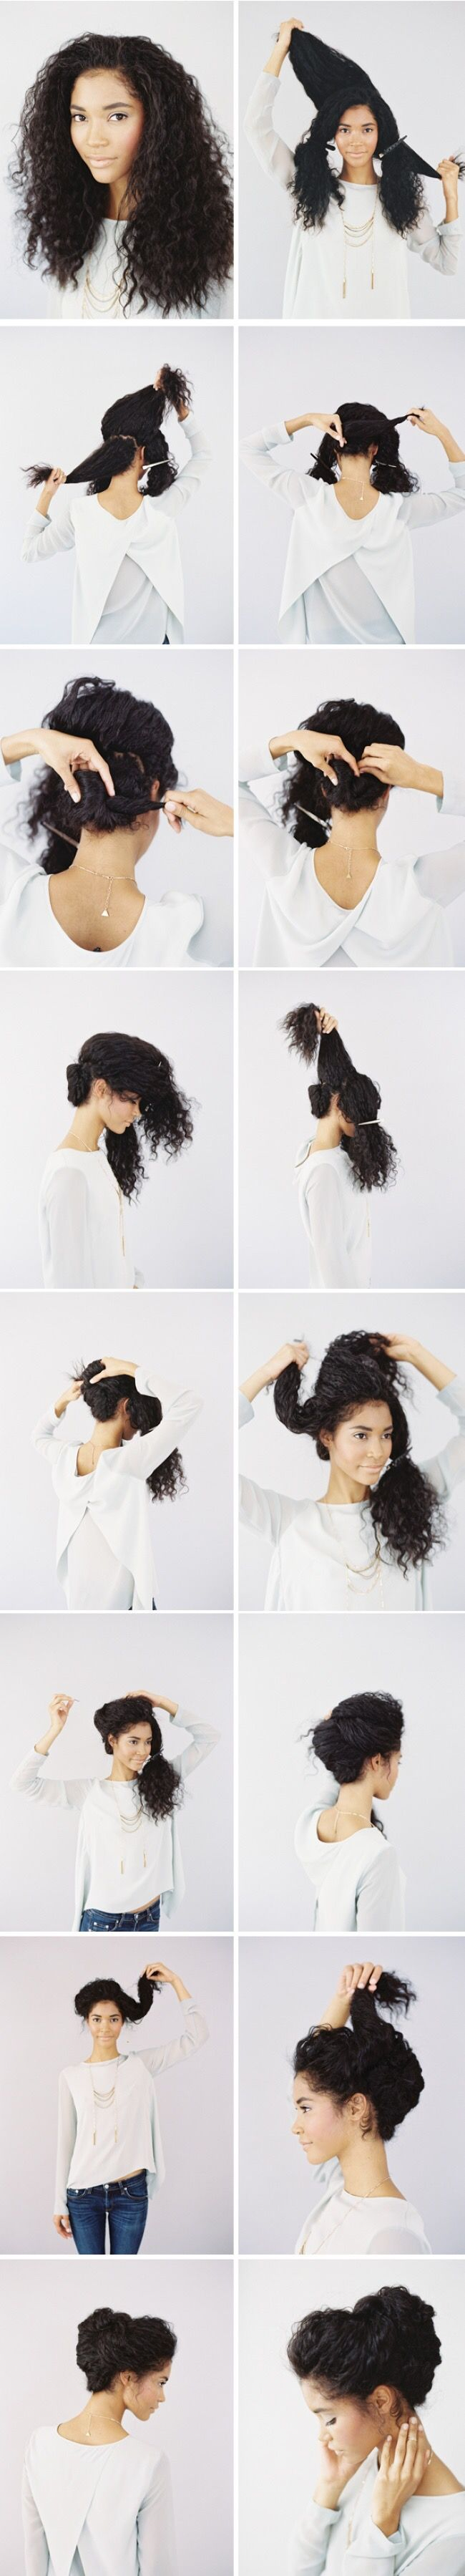 100 best прически images on Pinterest | Cute hairstyles, Hairstyle ...